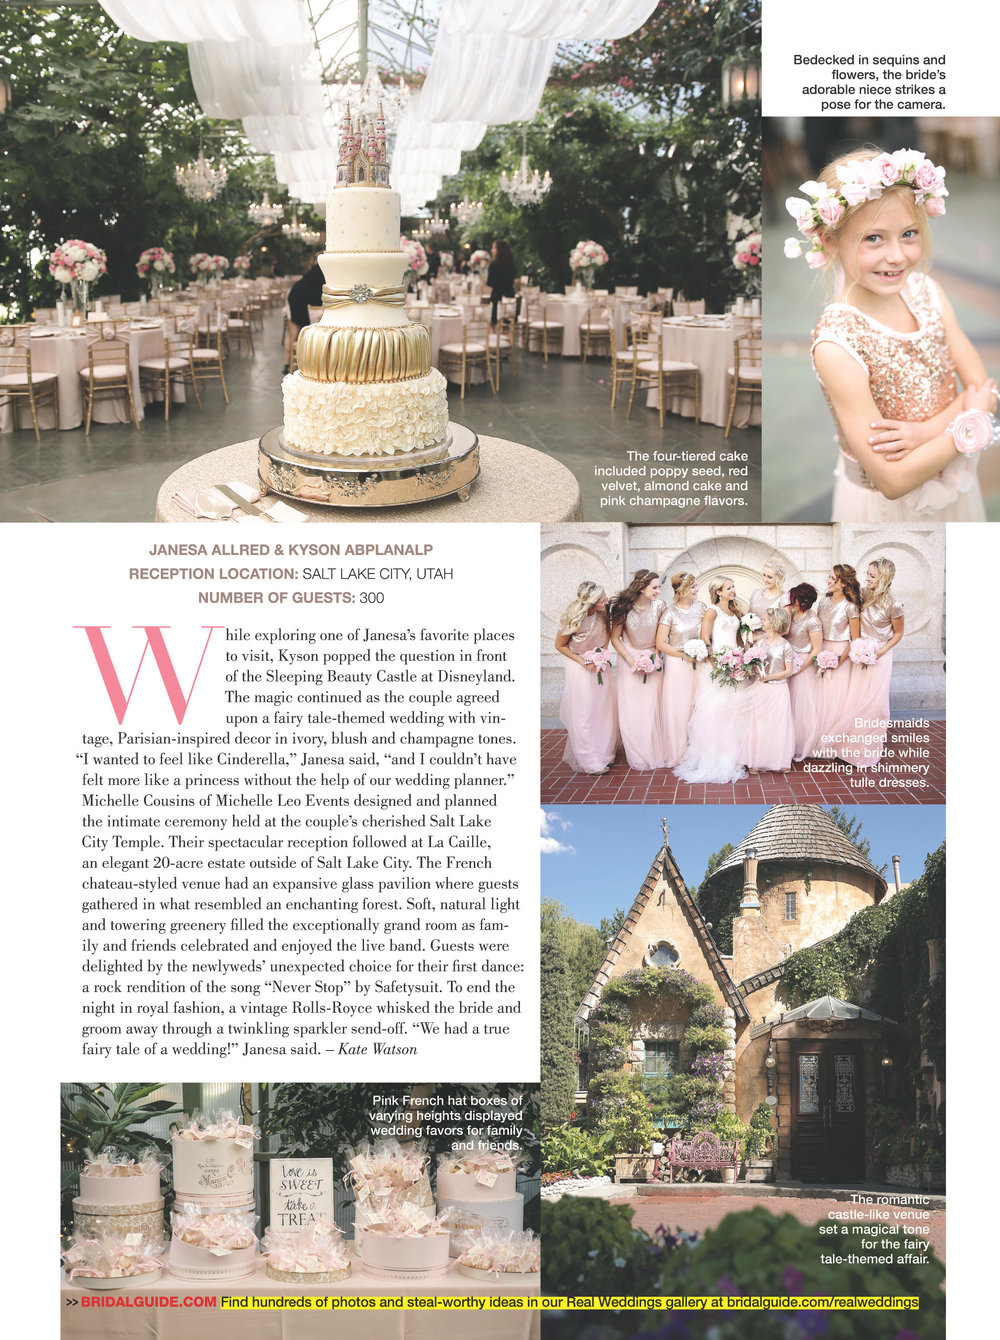 MLE Featured in Bridal Guide Magazine | Winter Ranch Wedding | Fairytale Wedding | Michelle Leo Events | Utah Event Planner and Designer | Pepper Nix Photography